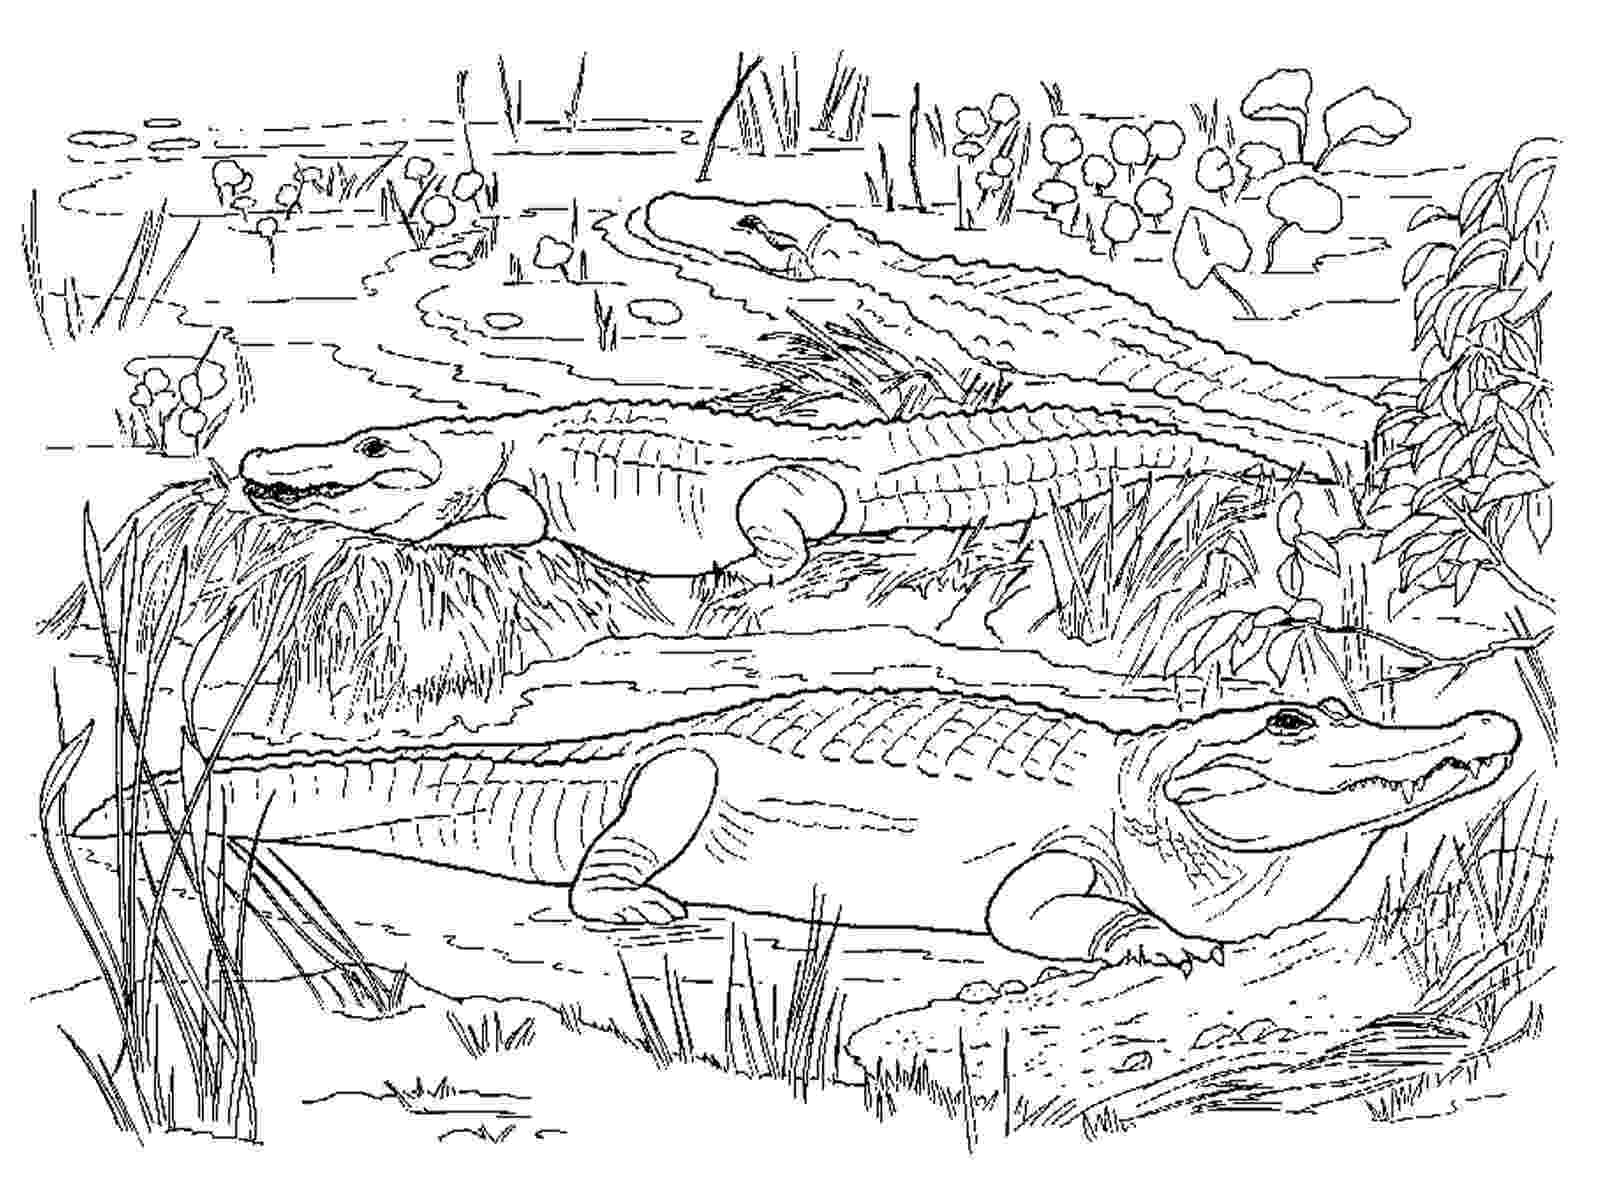 alligator coloring pages free printable alligator coloring pages for kids cool2bkids alligator coloring pages